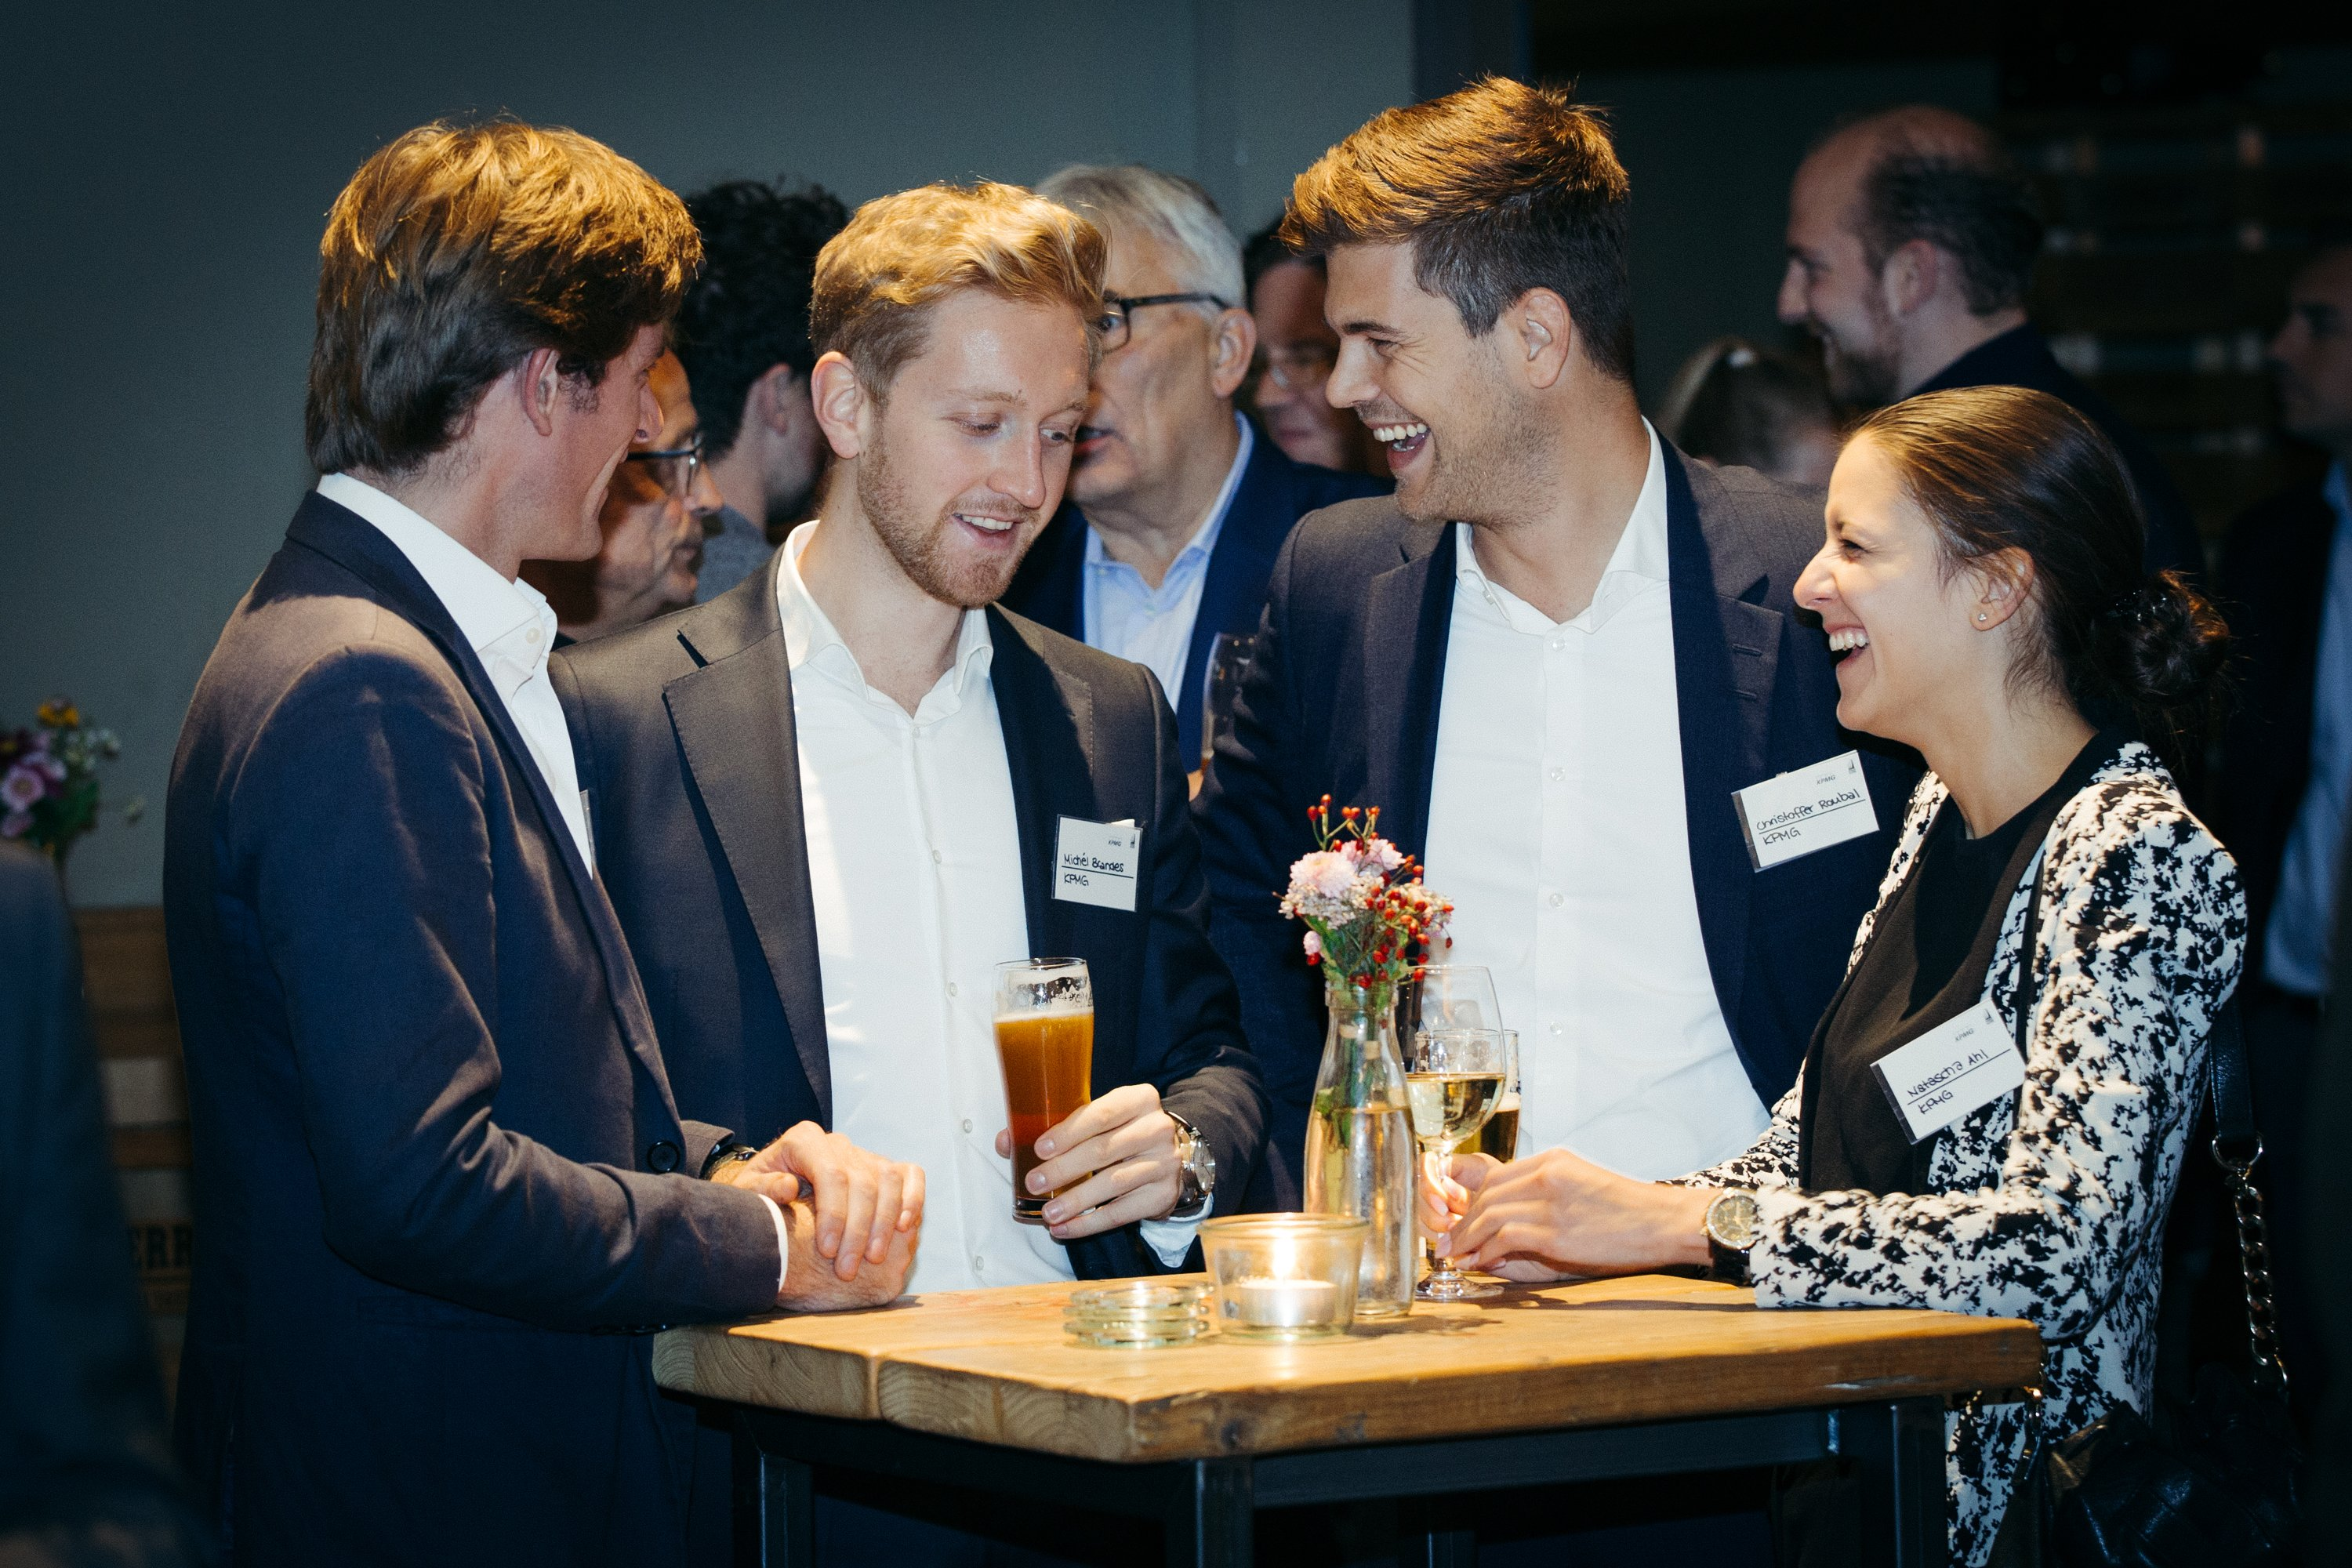 20181023-CORPORATE-EVENT-WIREDSCORE-LAUNCH-EVENT-HAMBURG-OFFENBLENDE-JKR-039.jpg